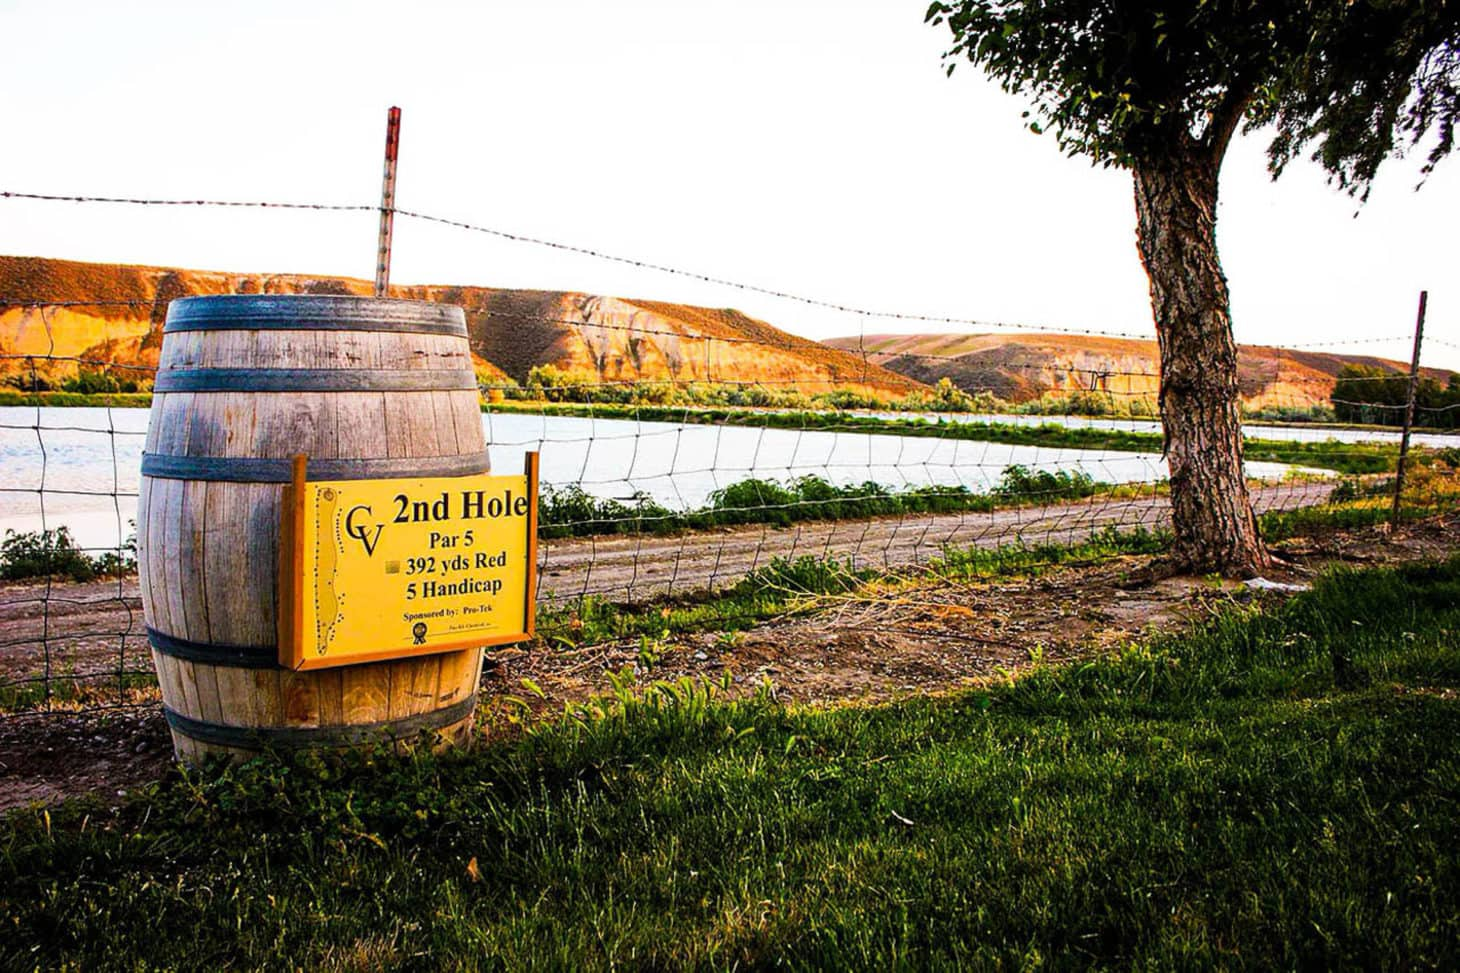 Disc golf hole at winery